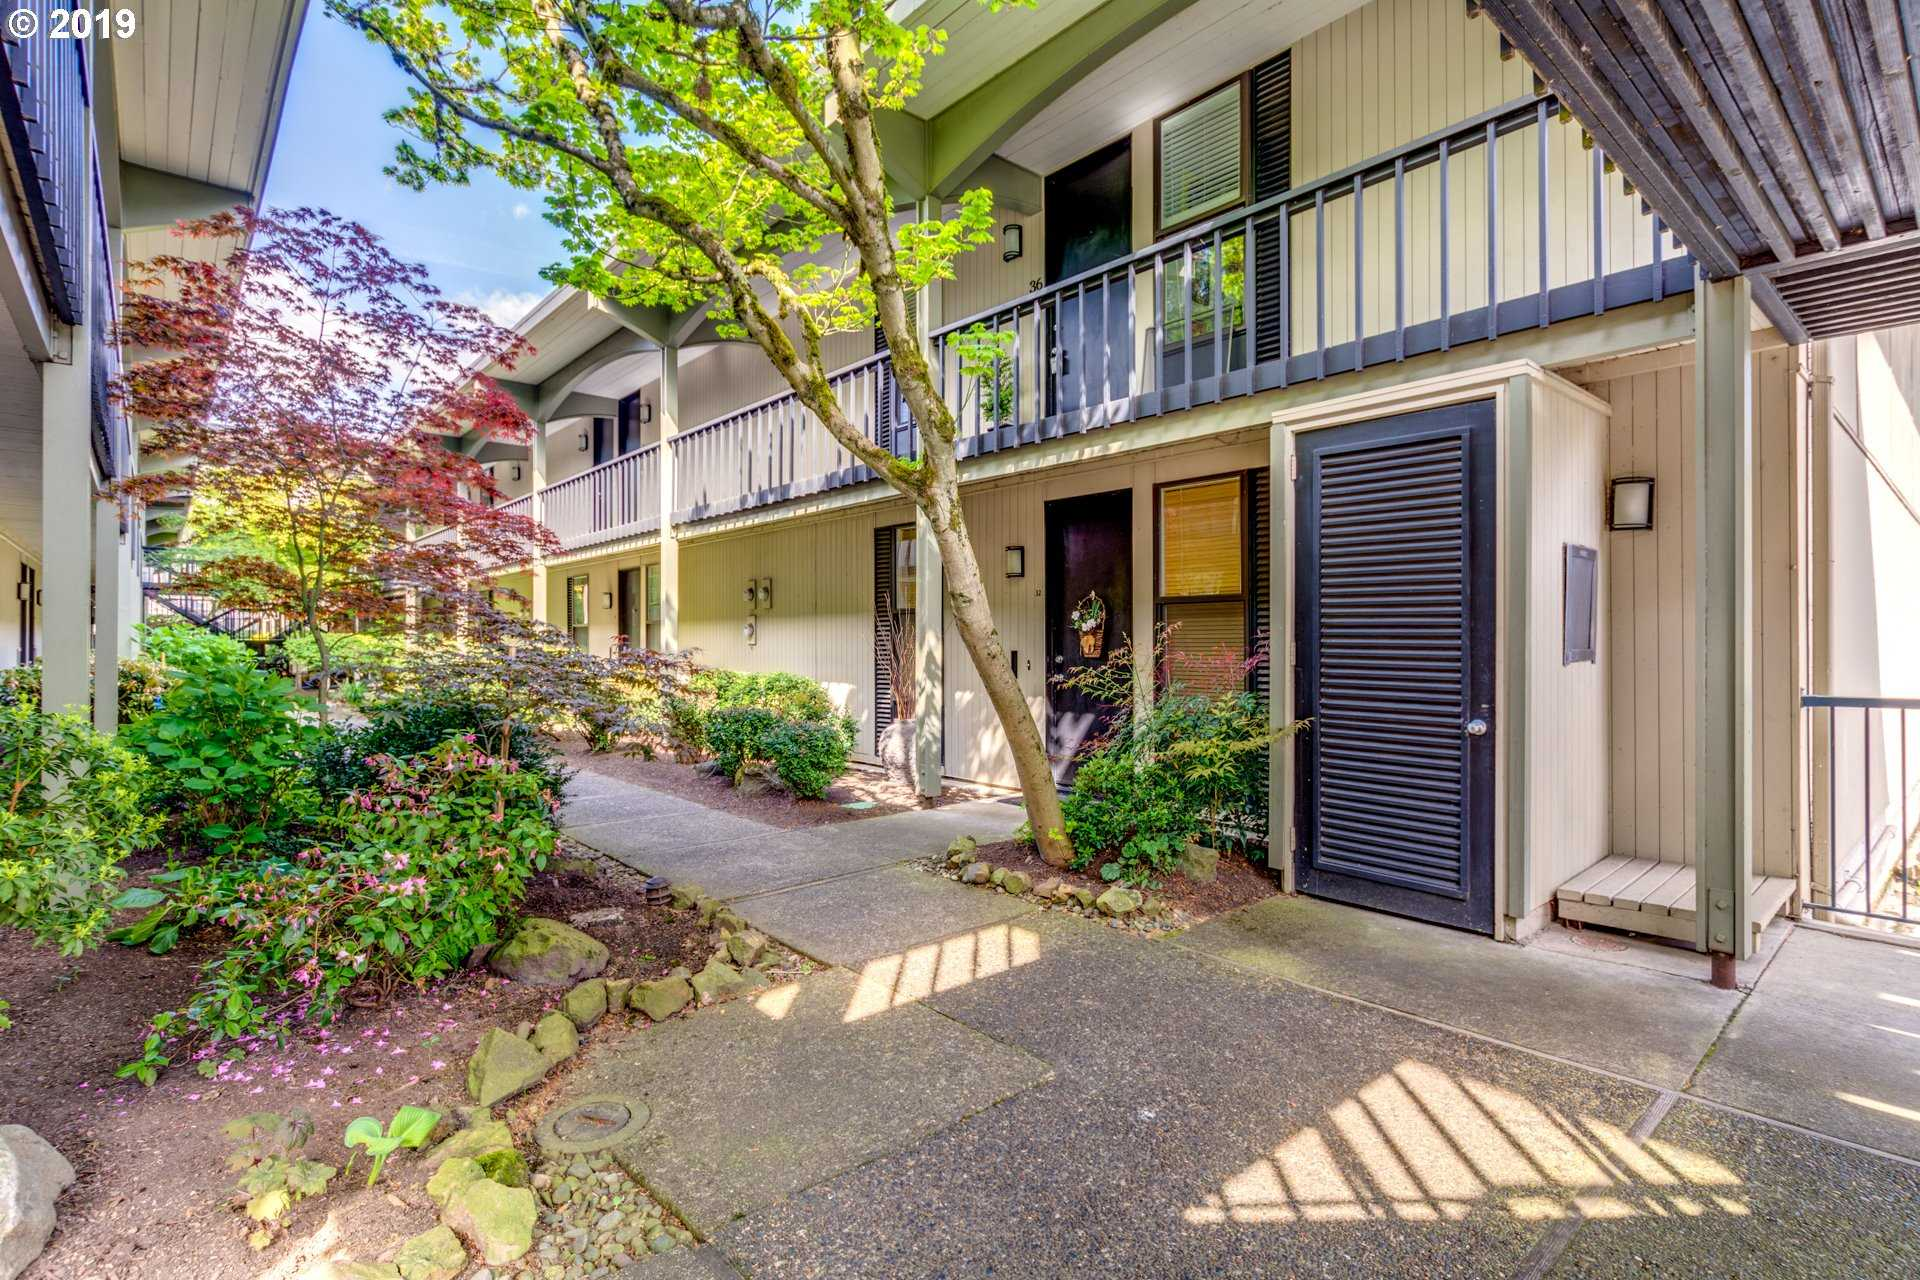 $249,999 - 1Br/1Ba -  for Sale in Downtown Lake Oswego, Lake Oswego